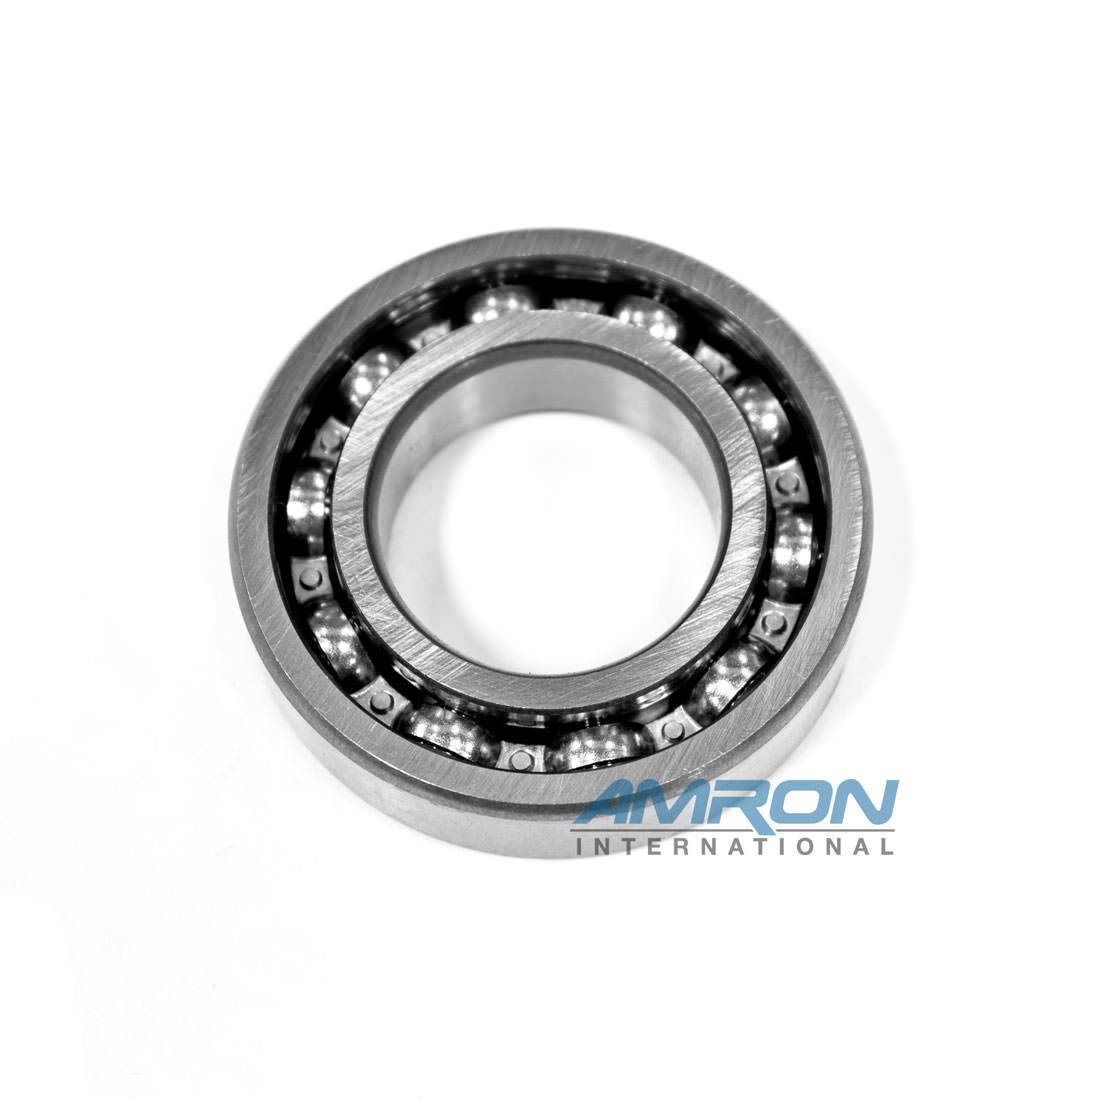 Stanley 13813 Ball Bearing for the GR29 Hydraulic Underwater Grinder